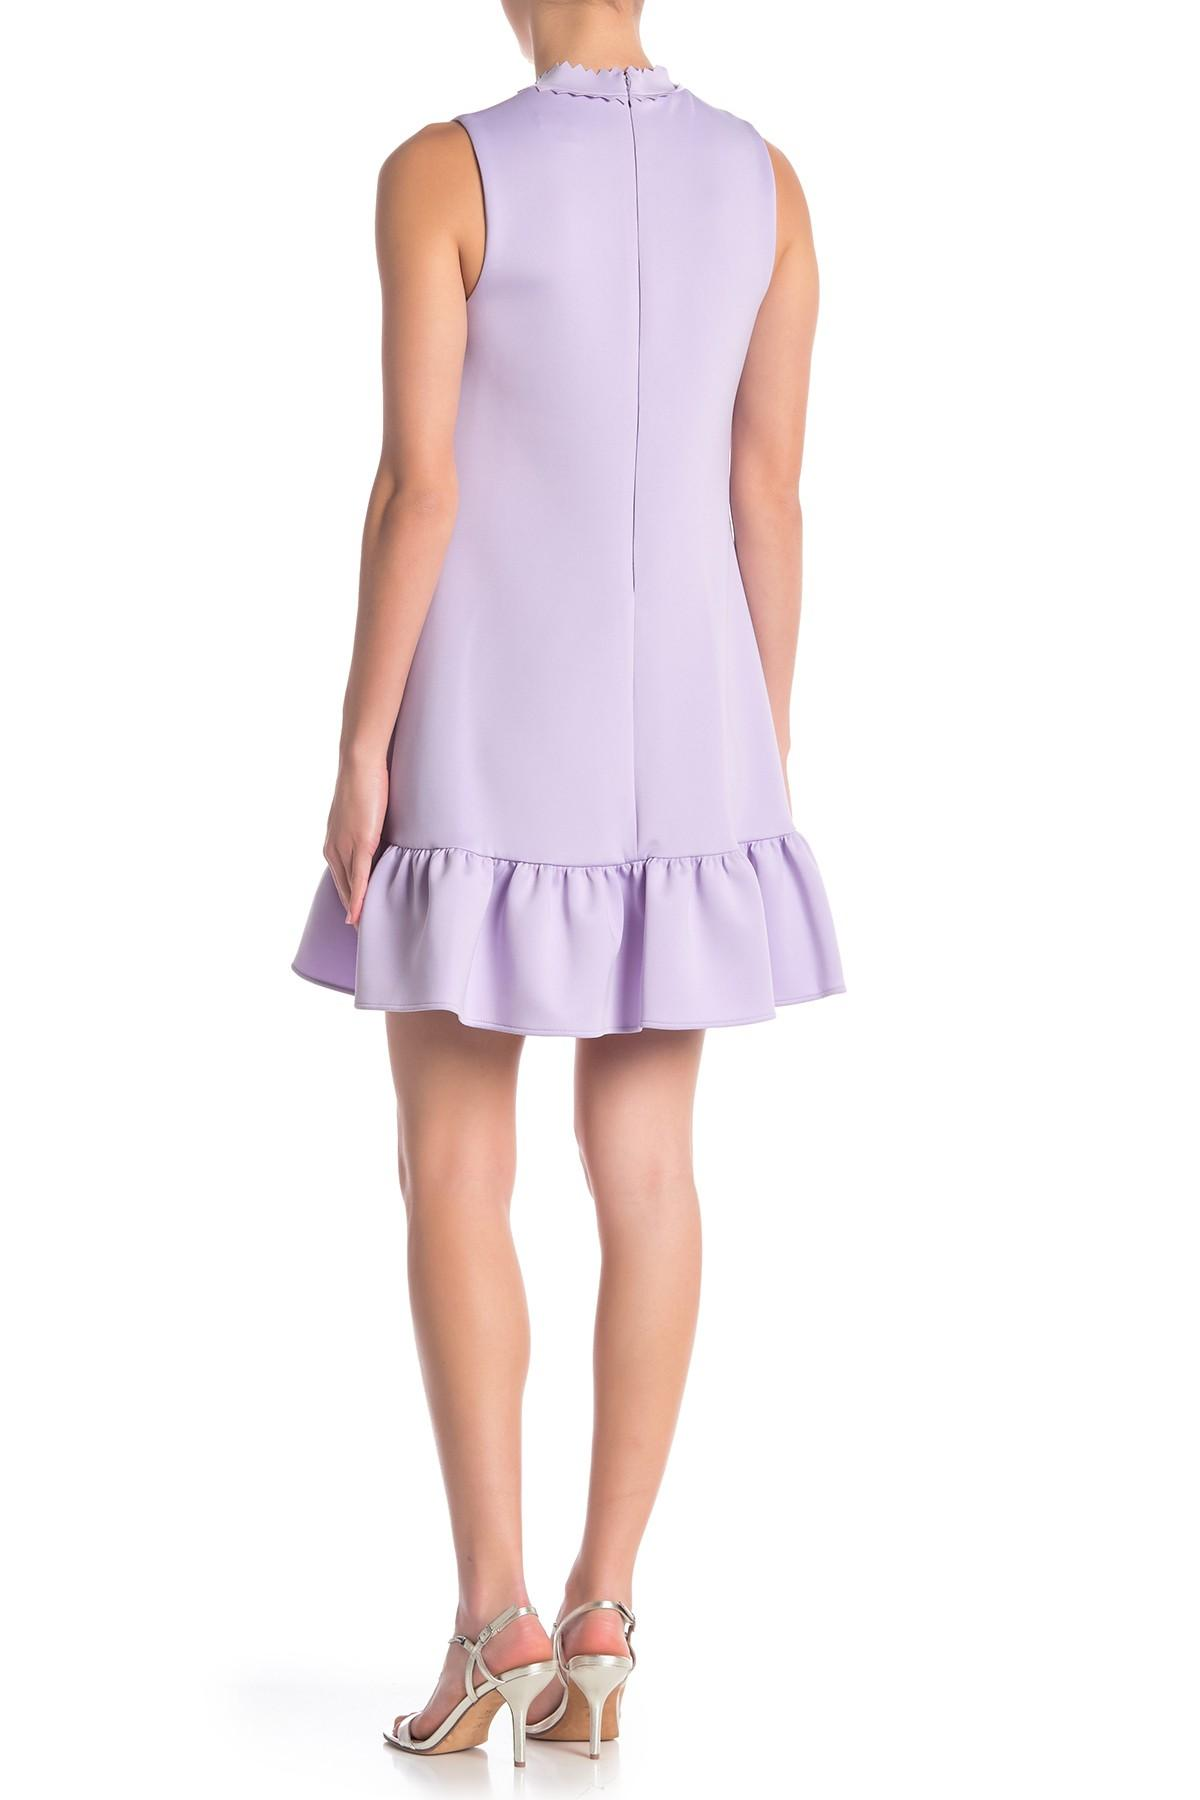 65daf7ce1fb Betsey Johnson - Purple Laser-cut Techno Knit Shift Dress - Lyst. View  fullscreen